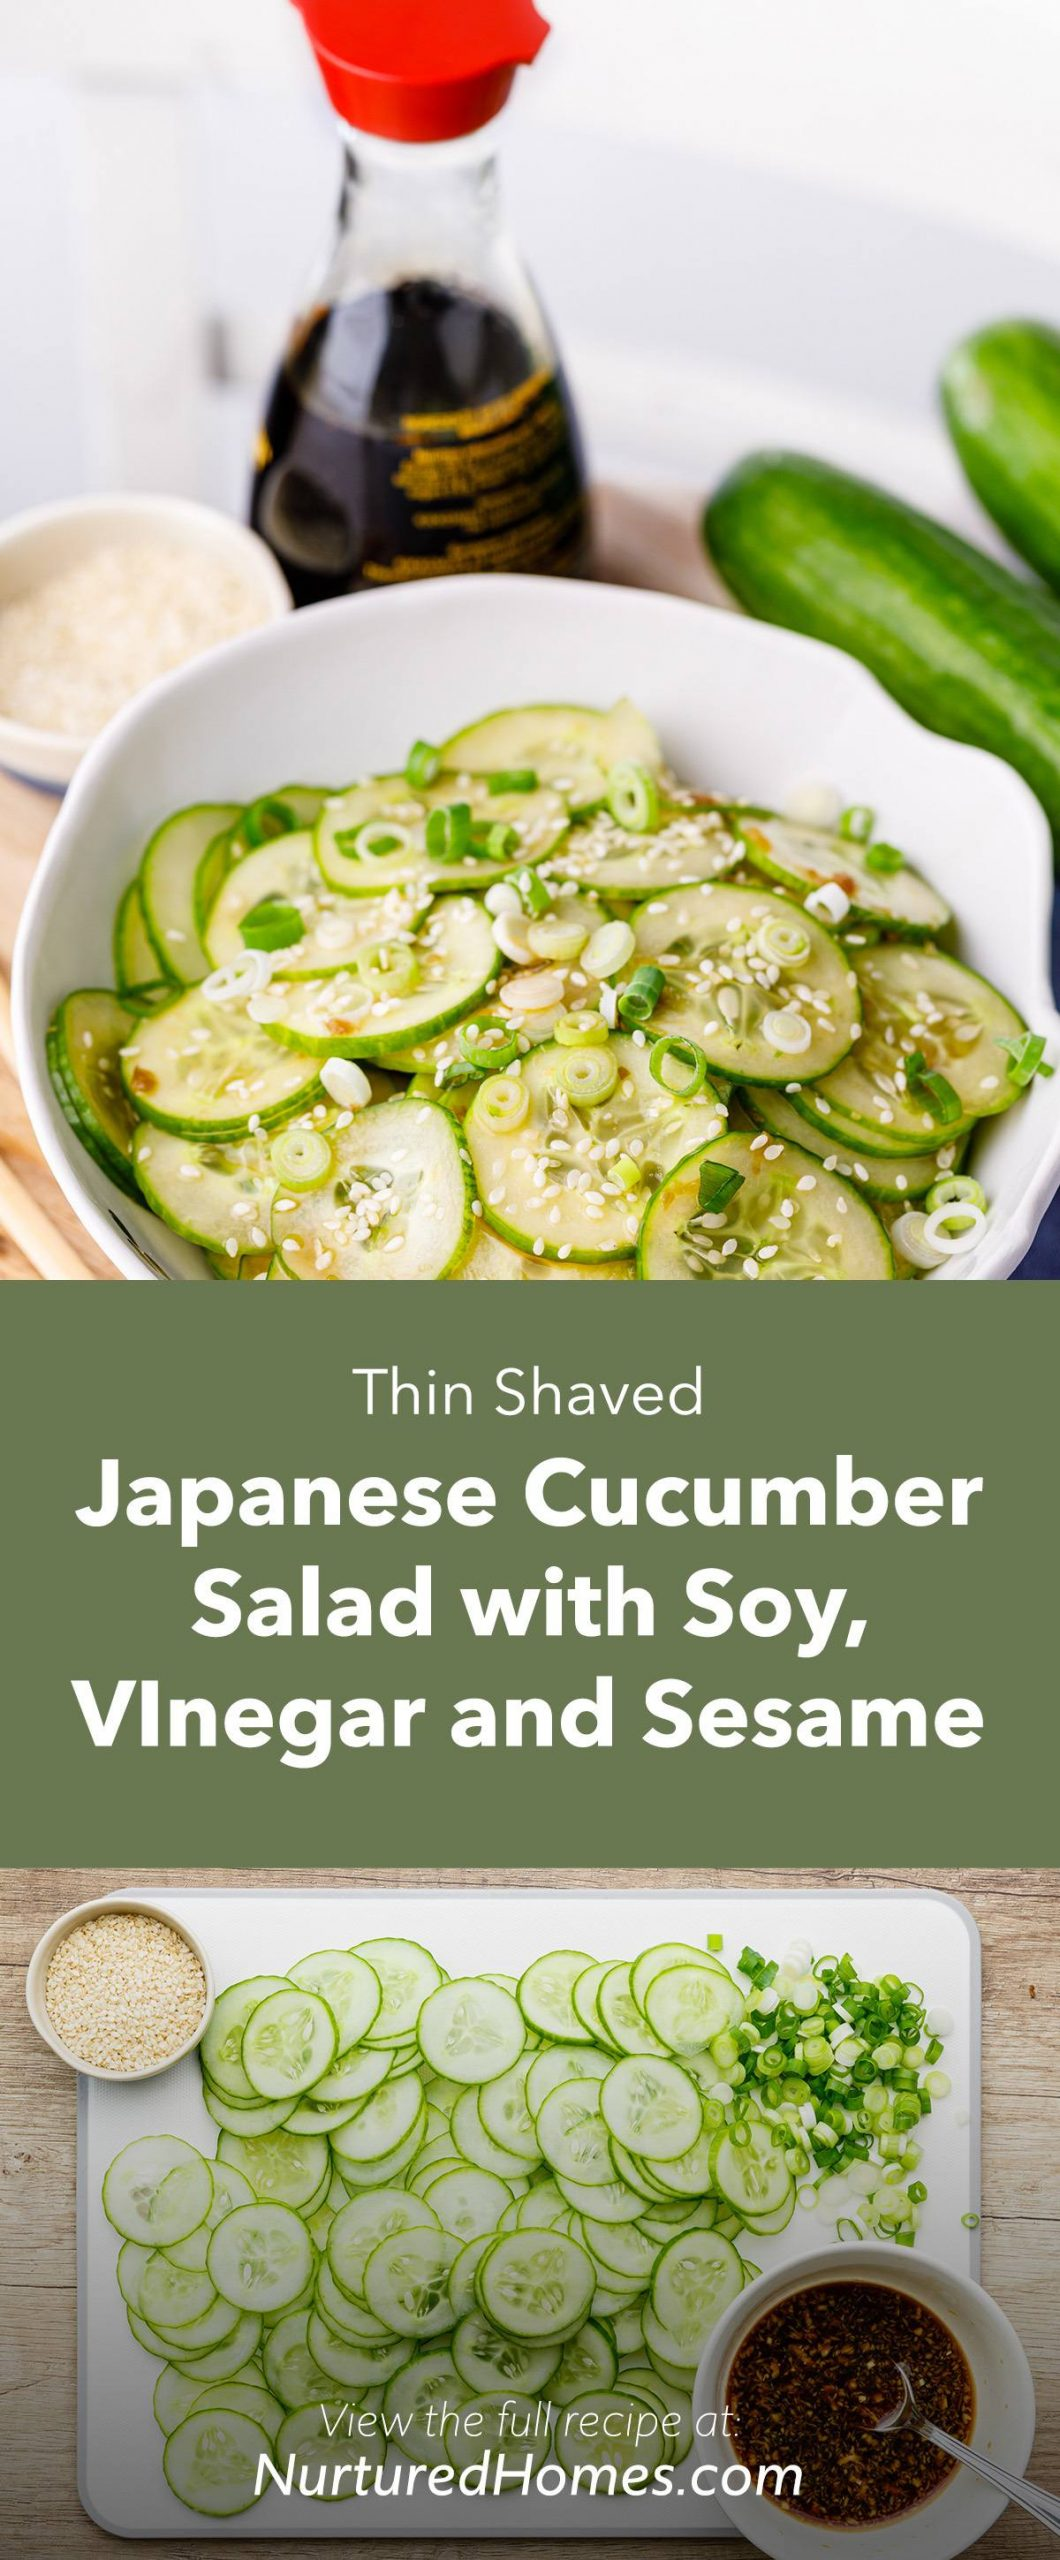 Thin Shaved Japanese Cucumber Salad with Soy, Vinegar and Sesame Seeds